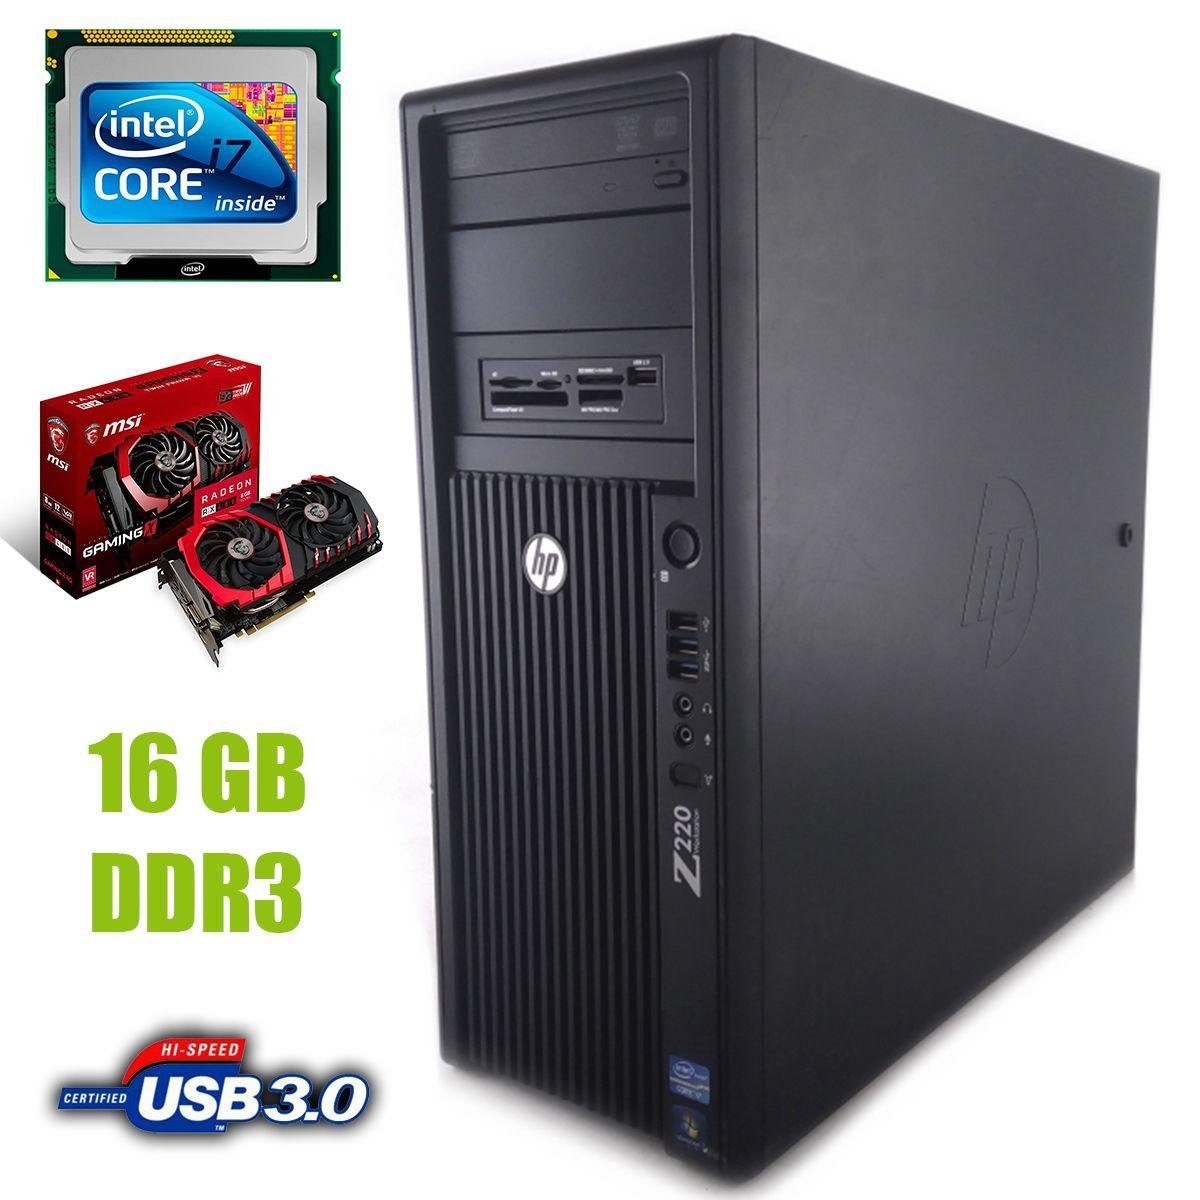 HP Z220 Tower / Intel Core i7-3770 (4 (8) ядра по 3.40 - 3.90 GHz) / 16 GB DDR3 / new! 120 GB SSD +500 GB HDD / Radeon RX480 8GB GDDR5 256bit